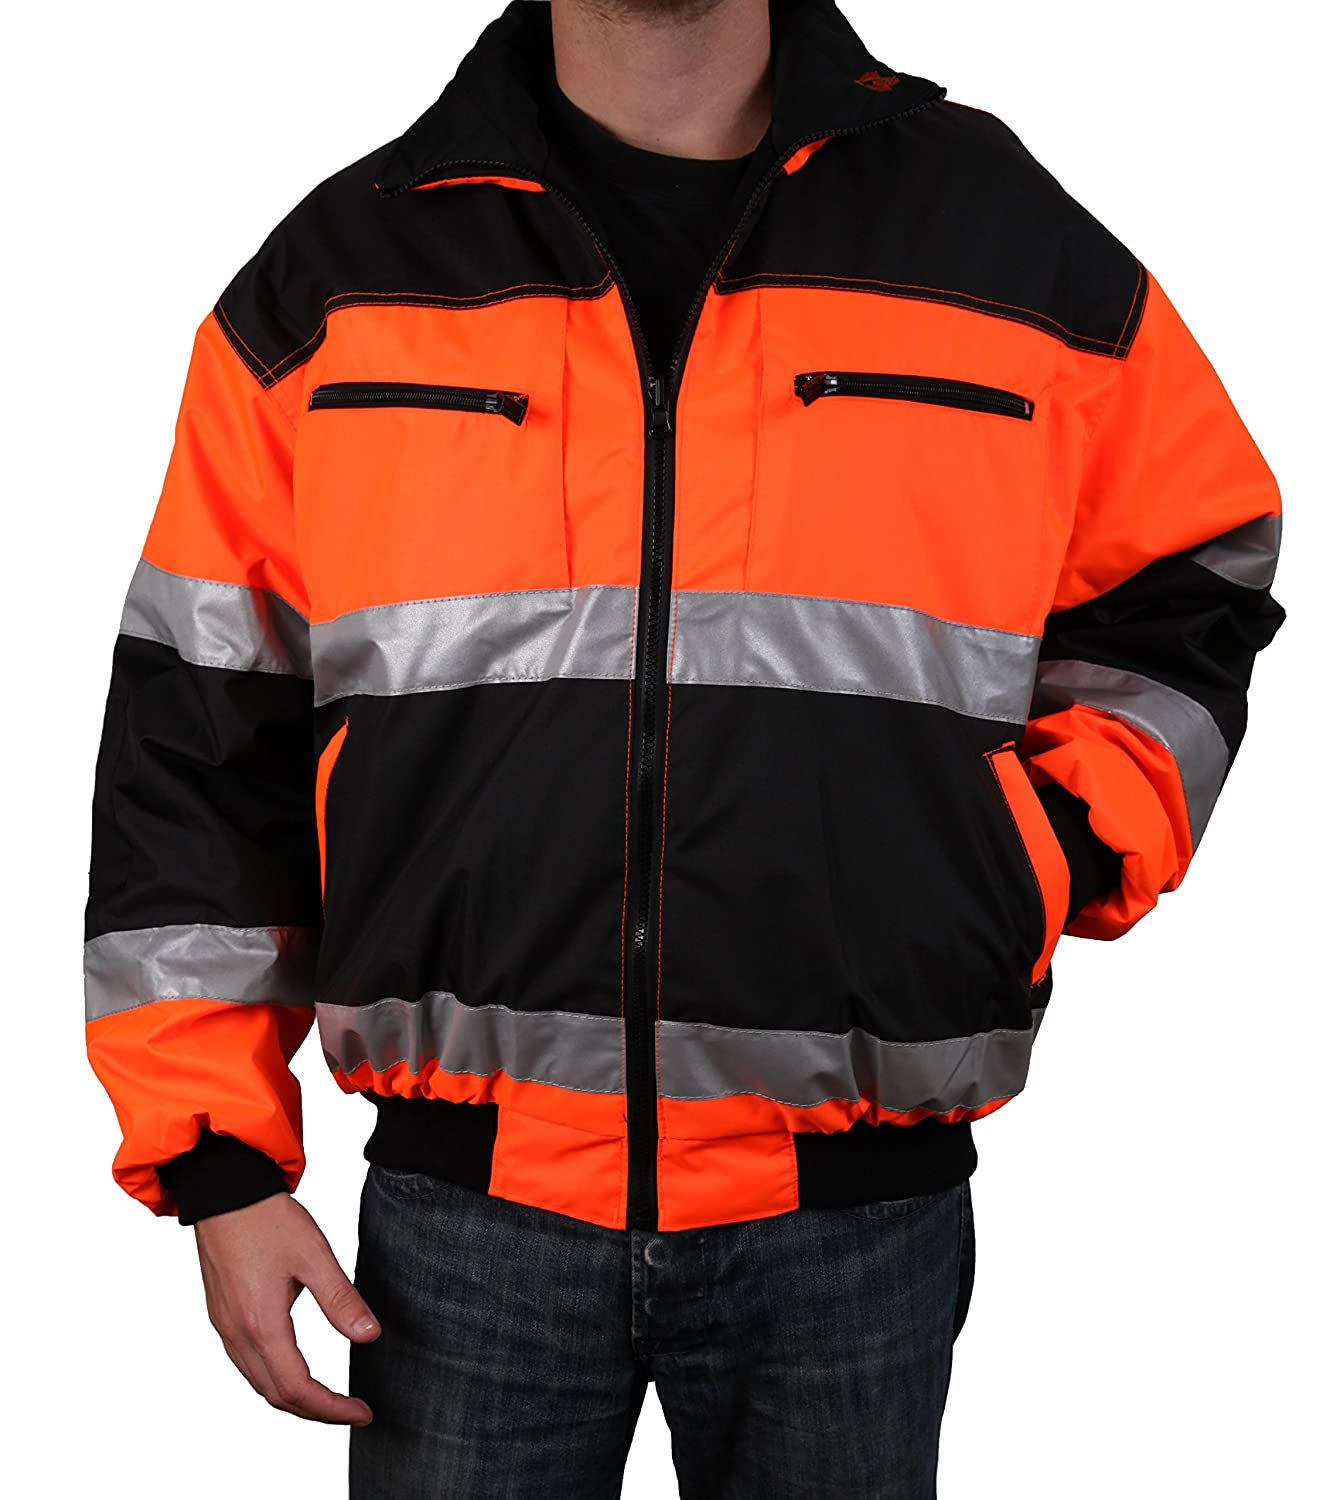 Safety Depot Reversible Jacket Class 2 ANSI Approved, Water Resistant, High Visibility Reflective Tape with Pockets (Extra Large) 2w